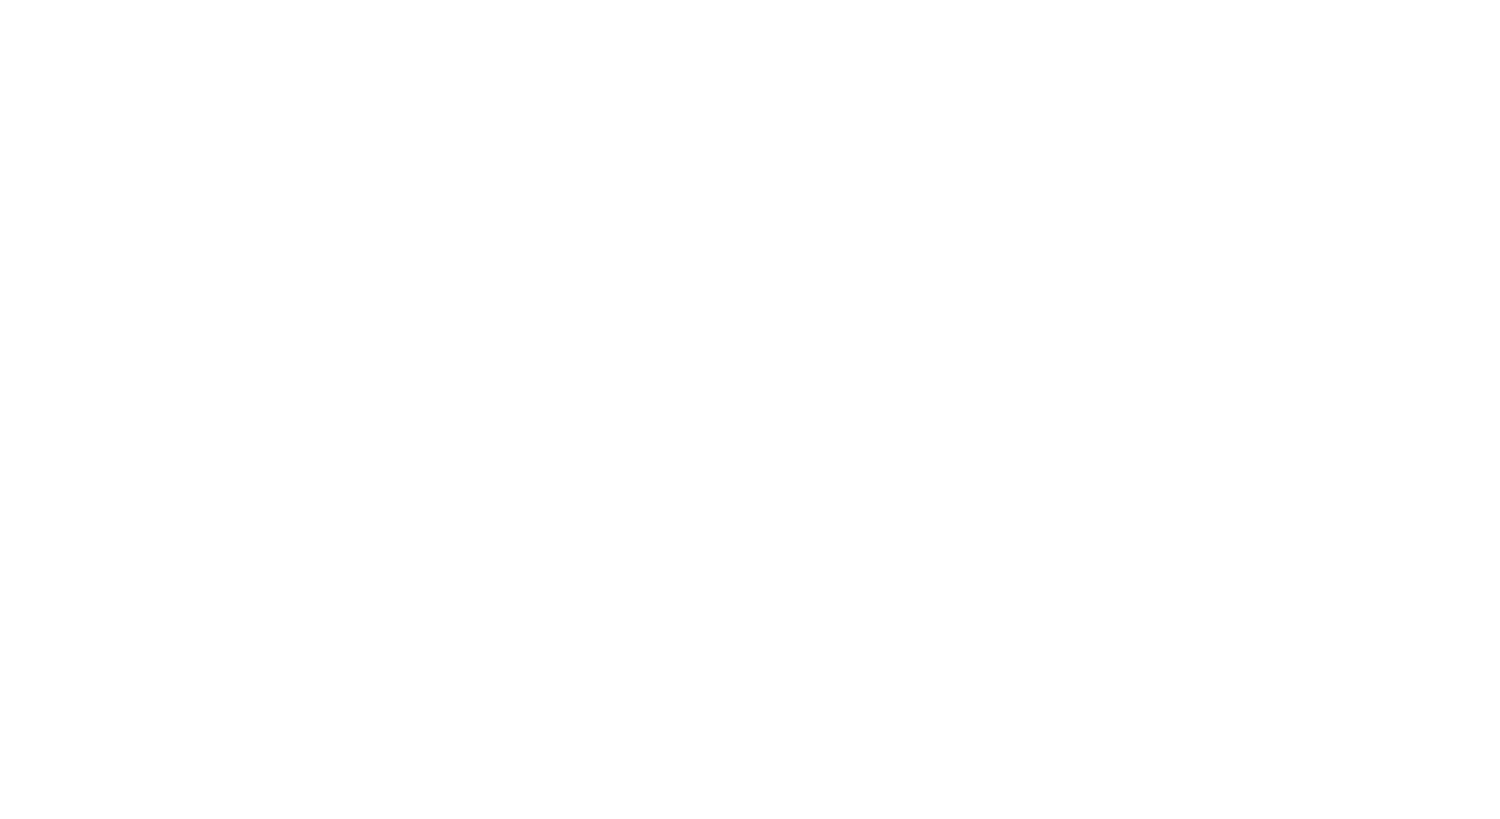 Savored Nutrition